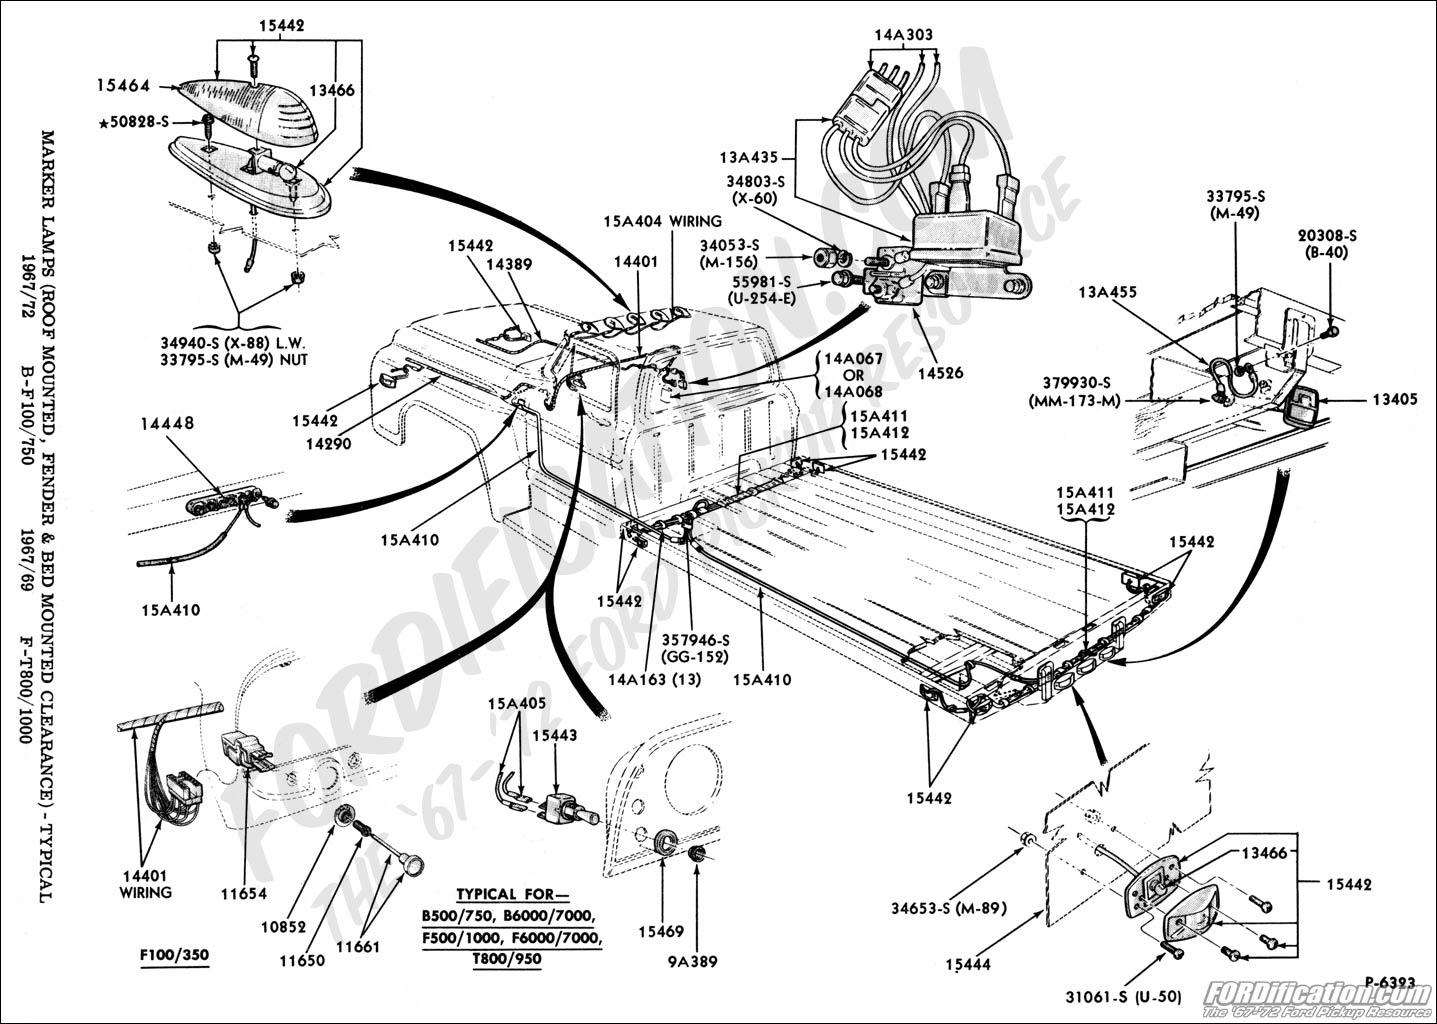 ford truck technical drawings and schematics section i 2001 Chevy Blazer Wiring Diagram ford truck technical drawings and schematics section i electrical and wiring